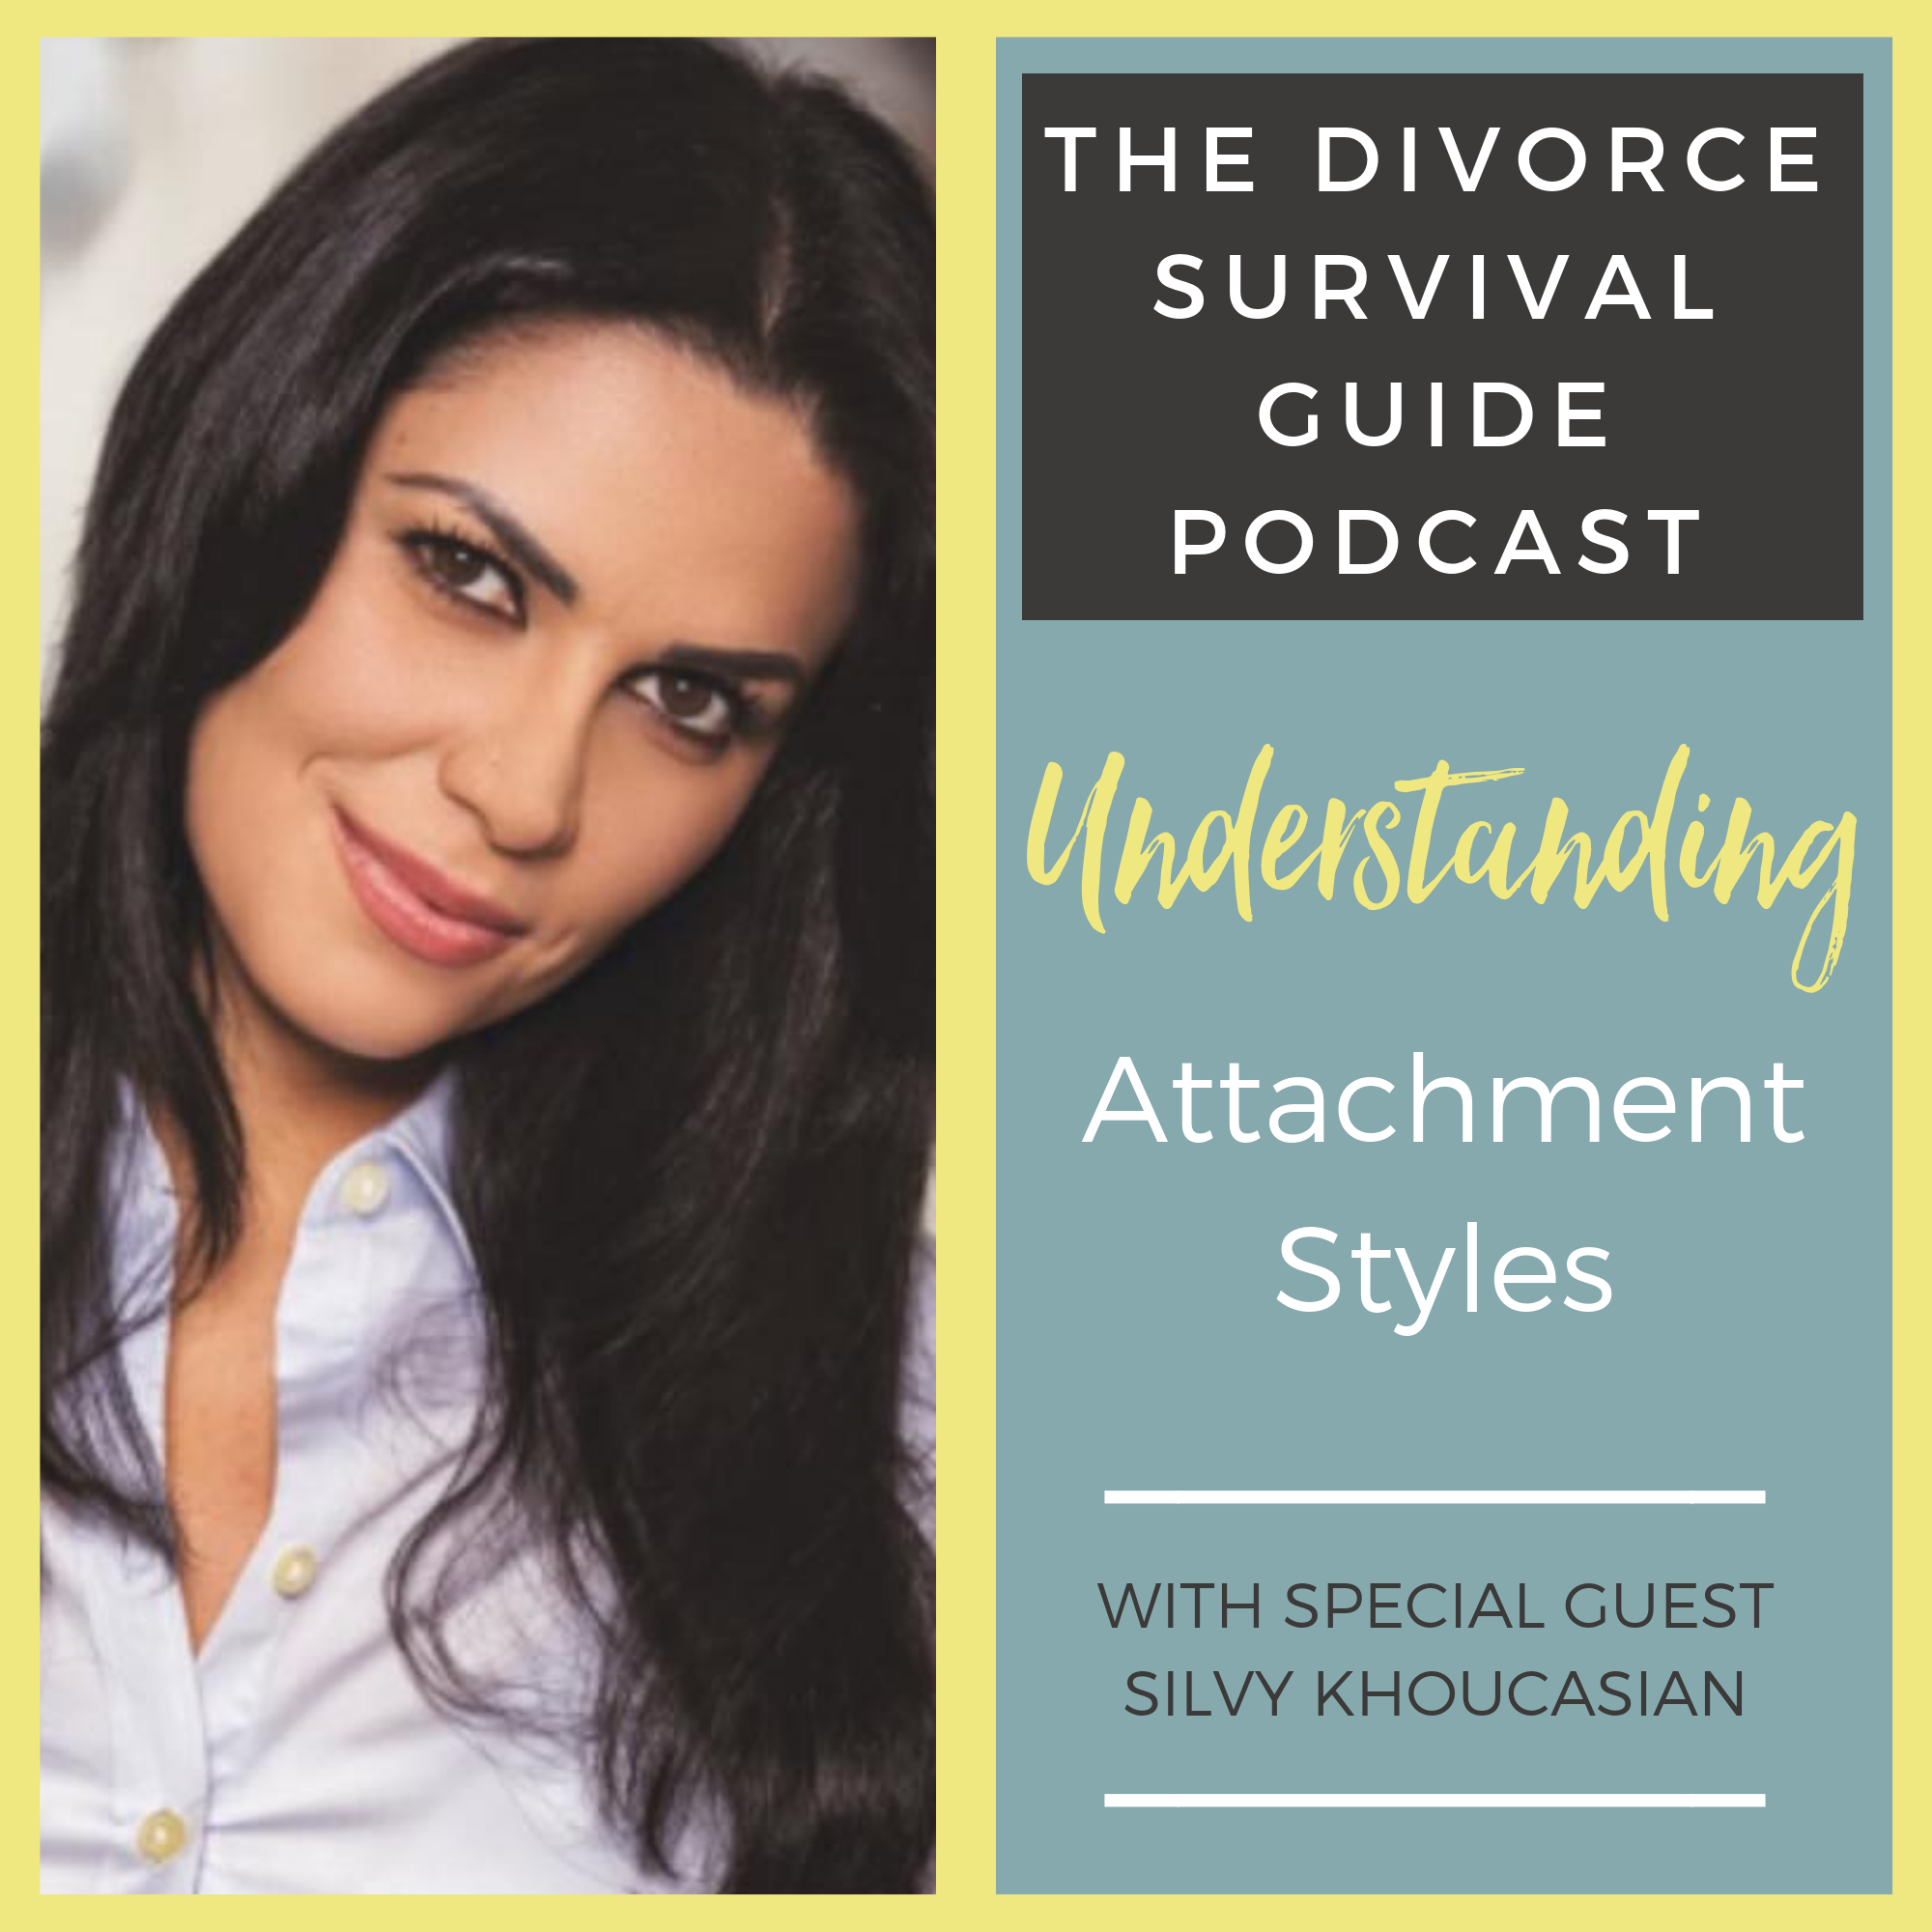 The Divorce Survival Guide Podcast - Understanding Attachment Styles with Silvy Khoucasian